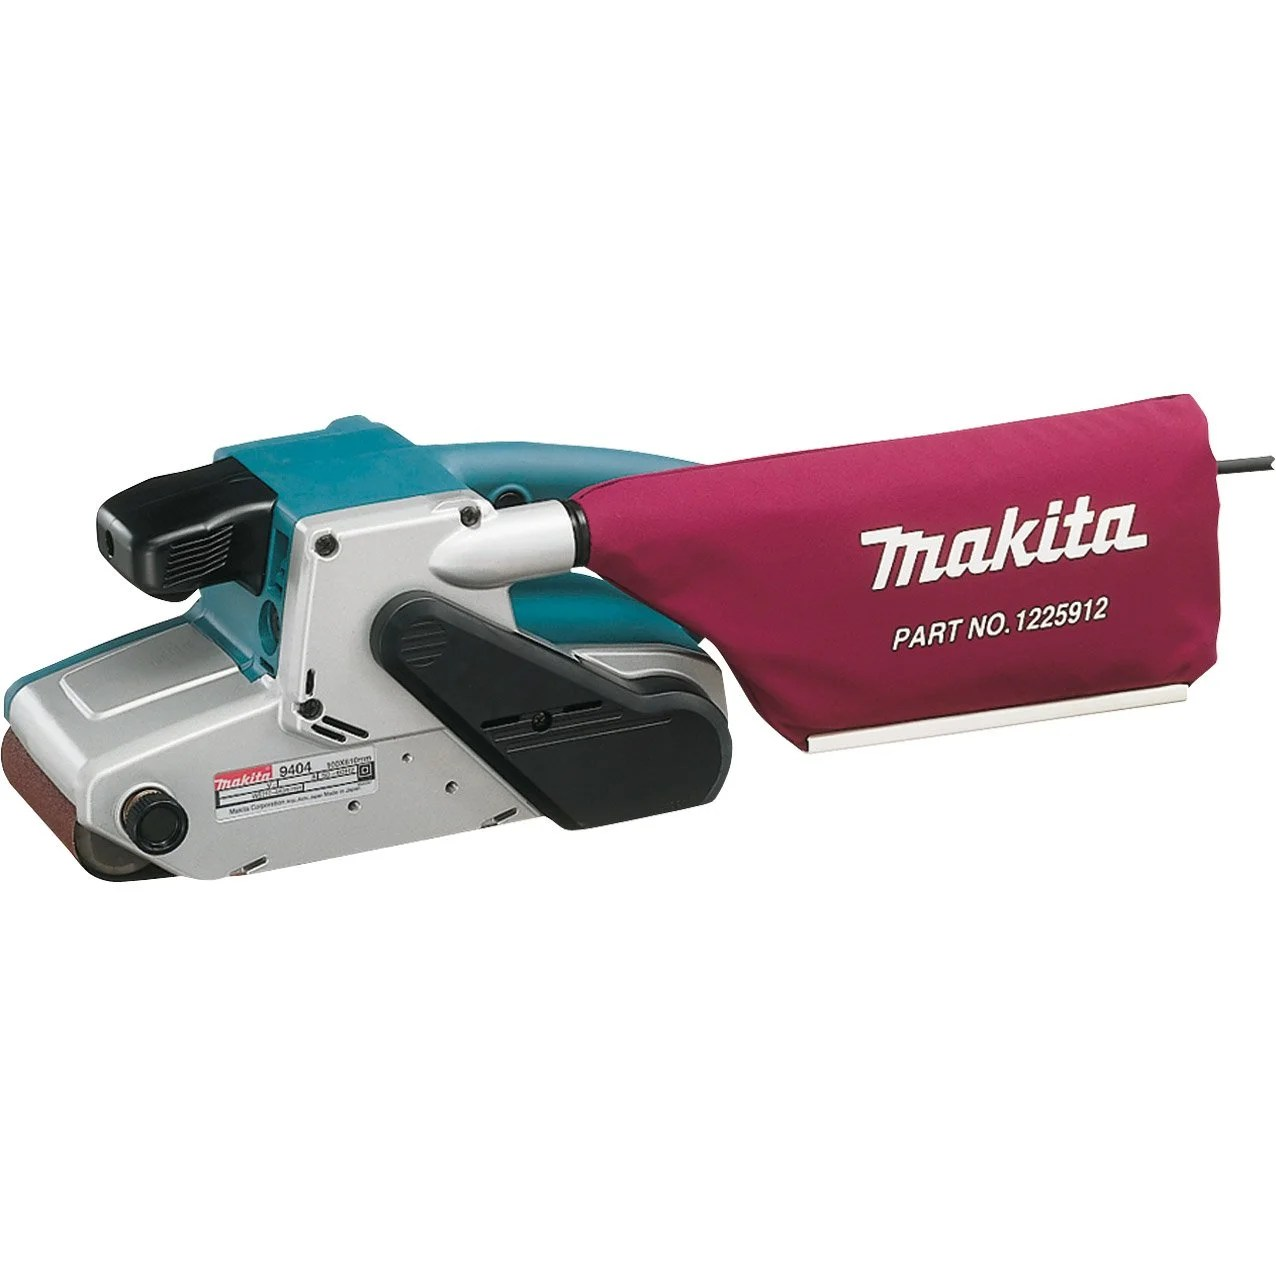 Leroy Merlin Ponceuse A Bande Ponceuse à Bande Filaire Makita 1010 W